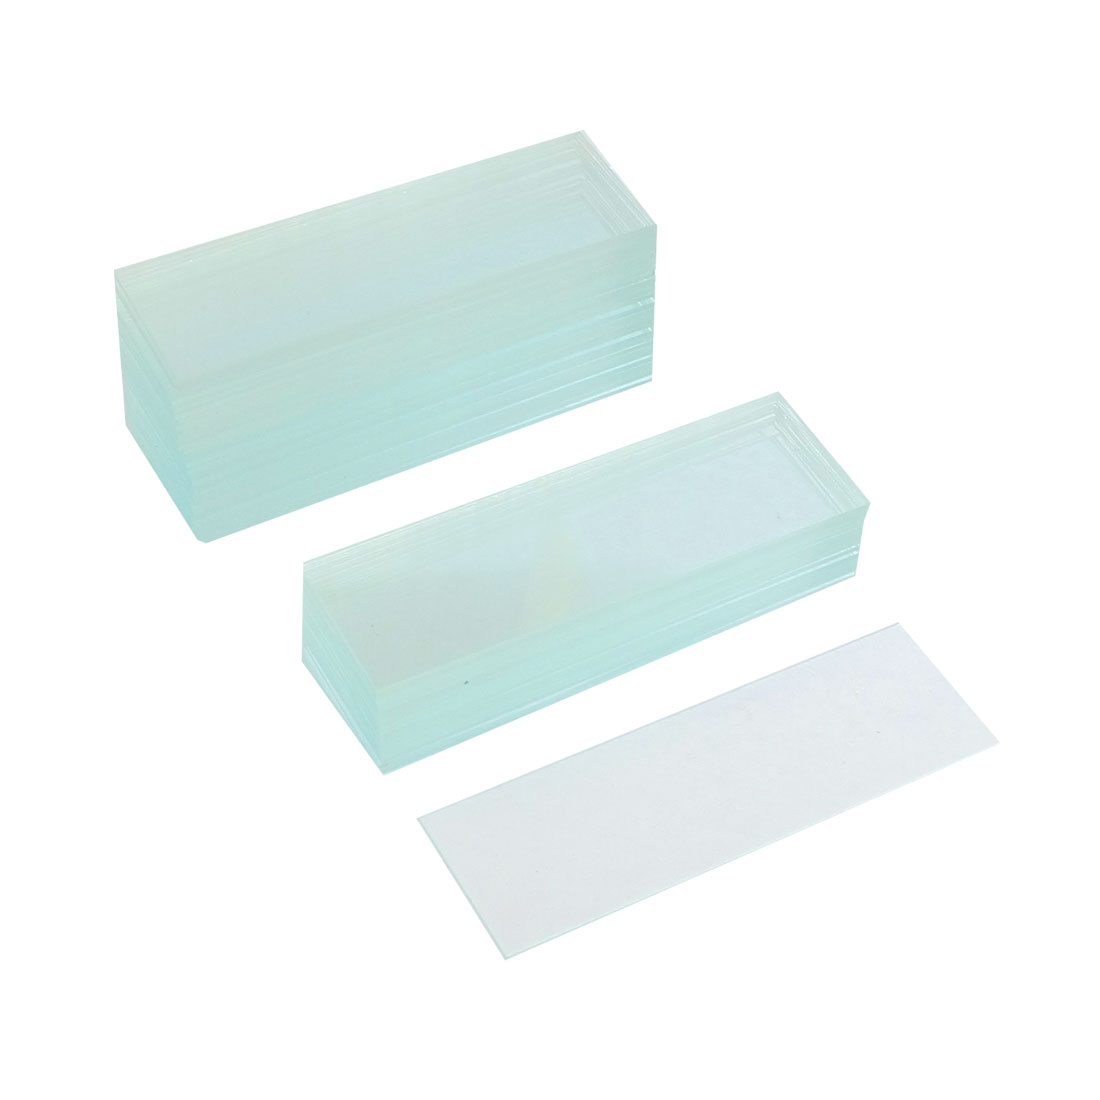 "50 Pcs Pre-cleaned Microscope Blank Glass Slides 1""x3"" - image 1 of 1"